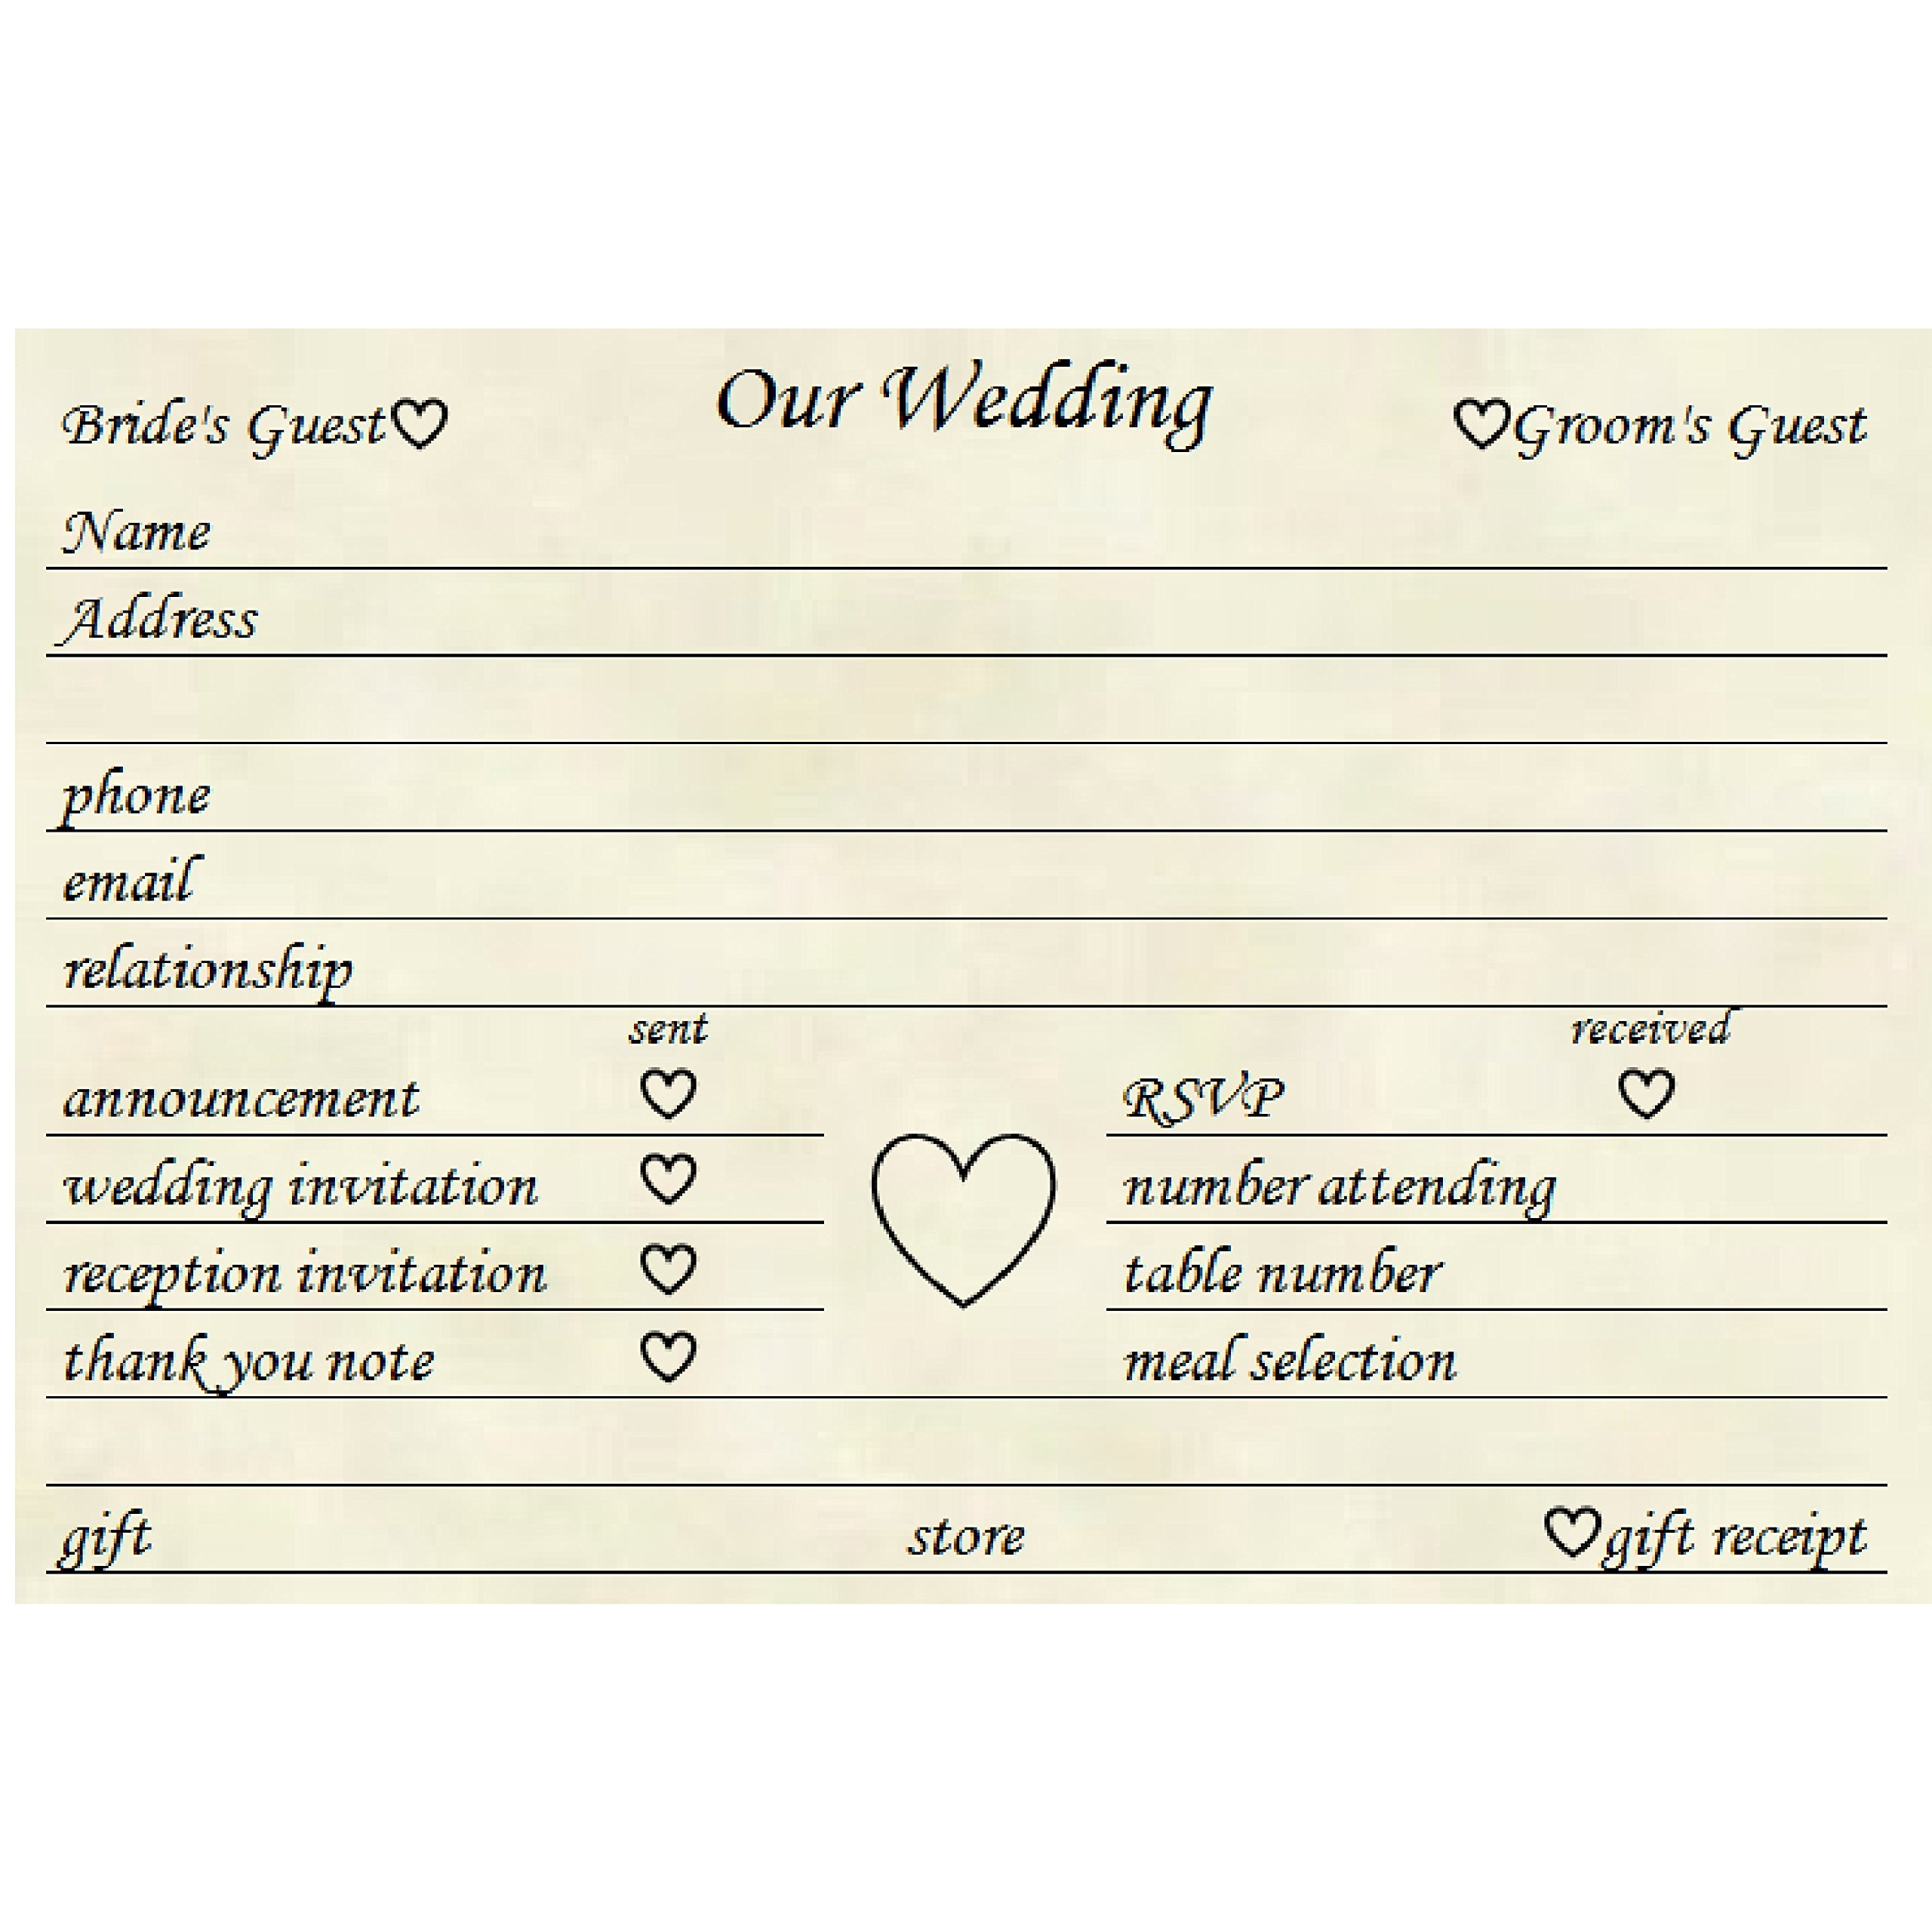 Colonial Cards: 100 Natural Parchment 4'' x 6'' Cards, Wedding Planning Organization Cards